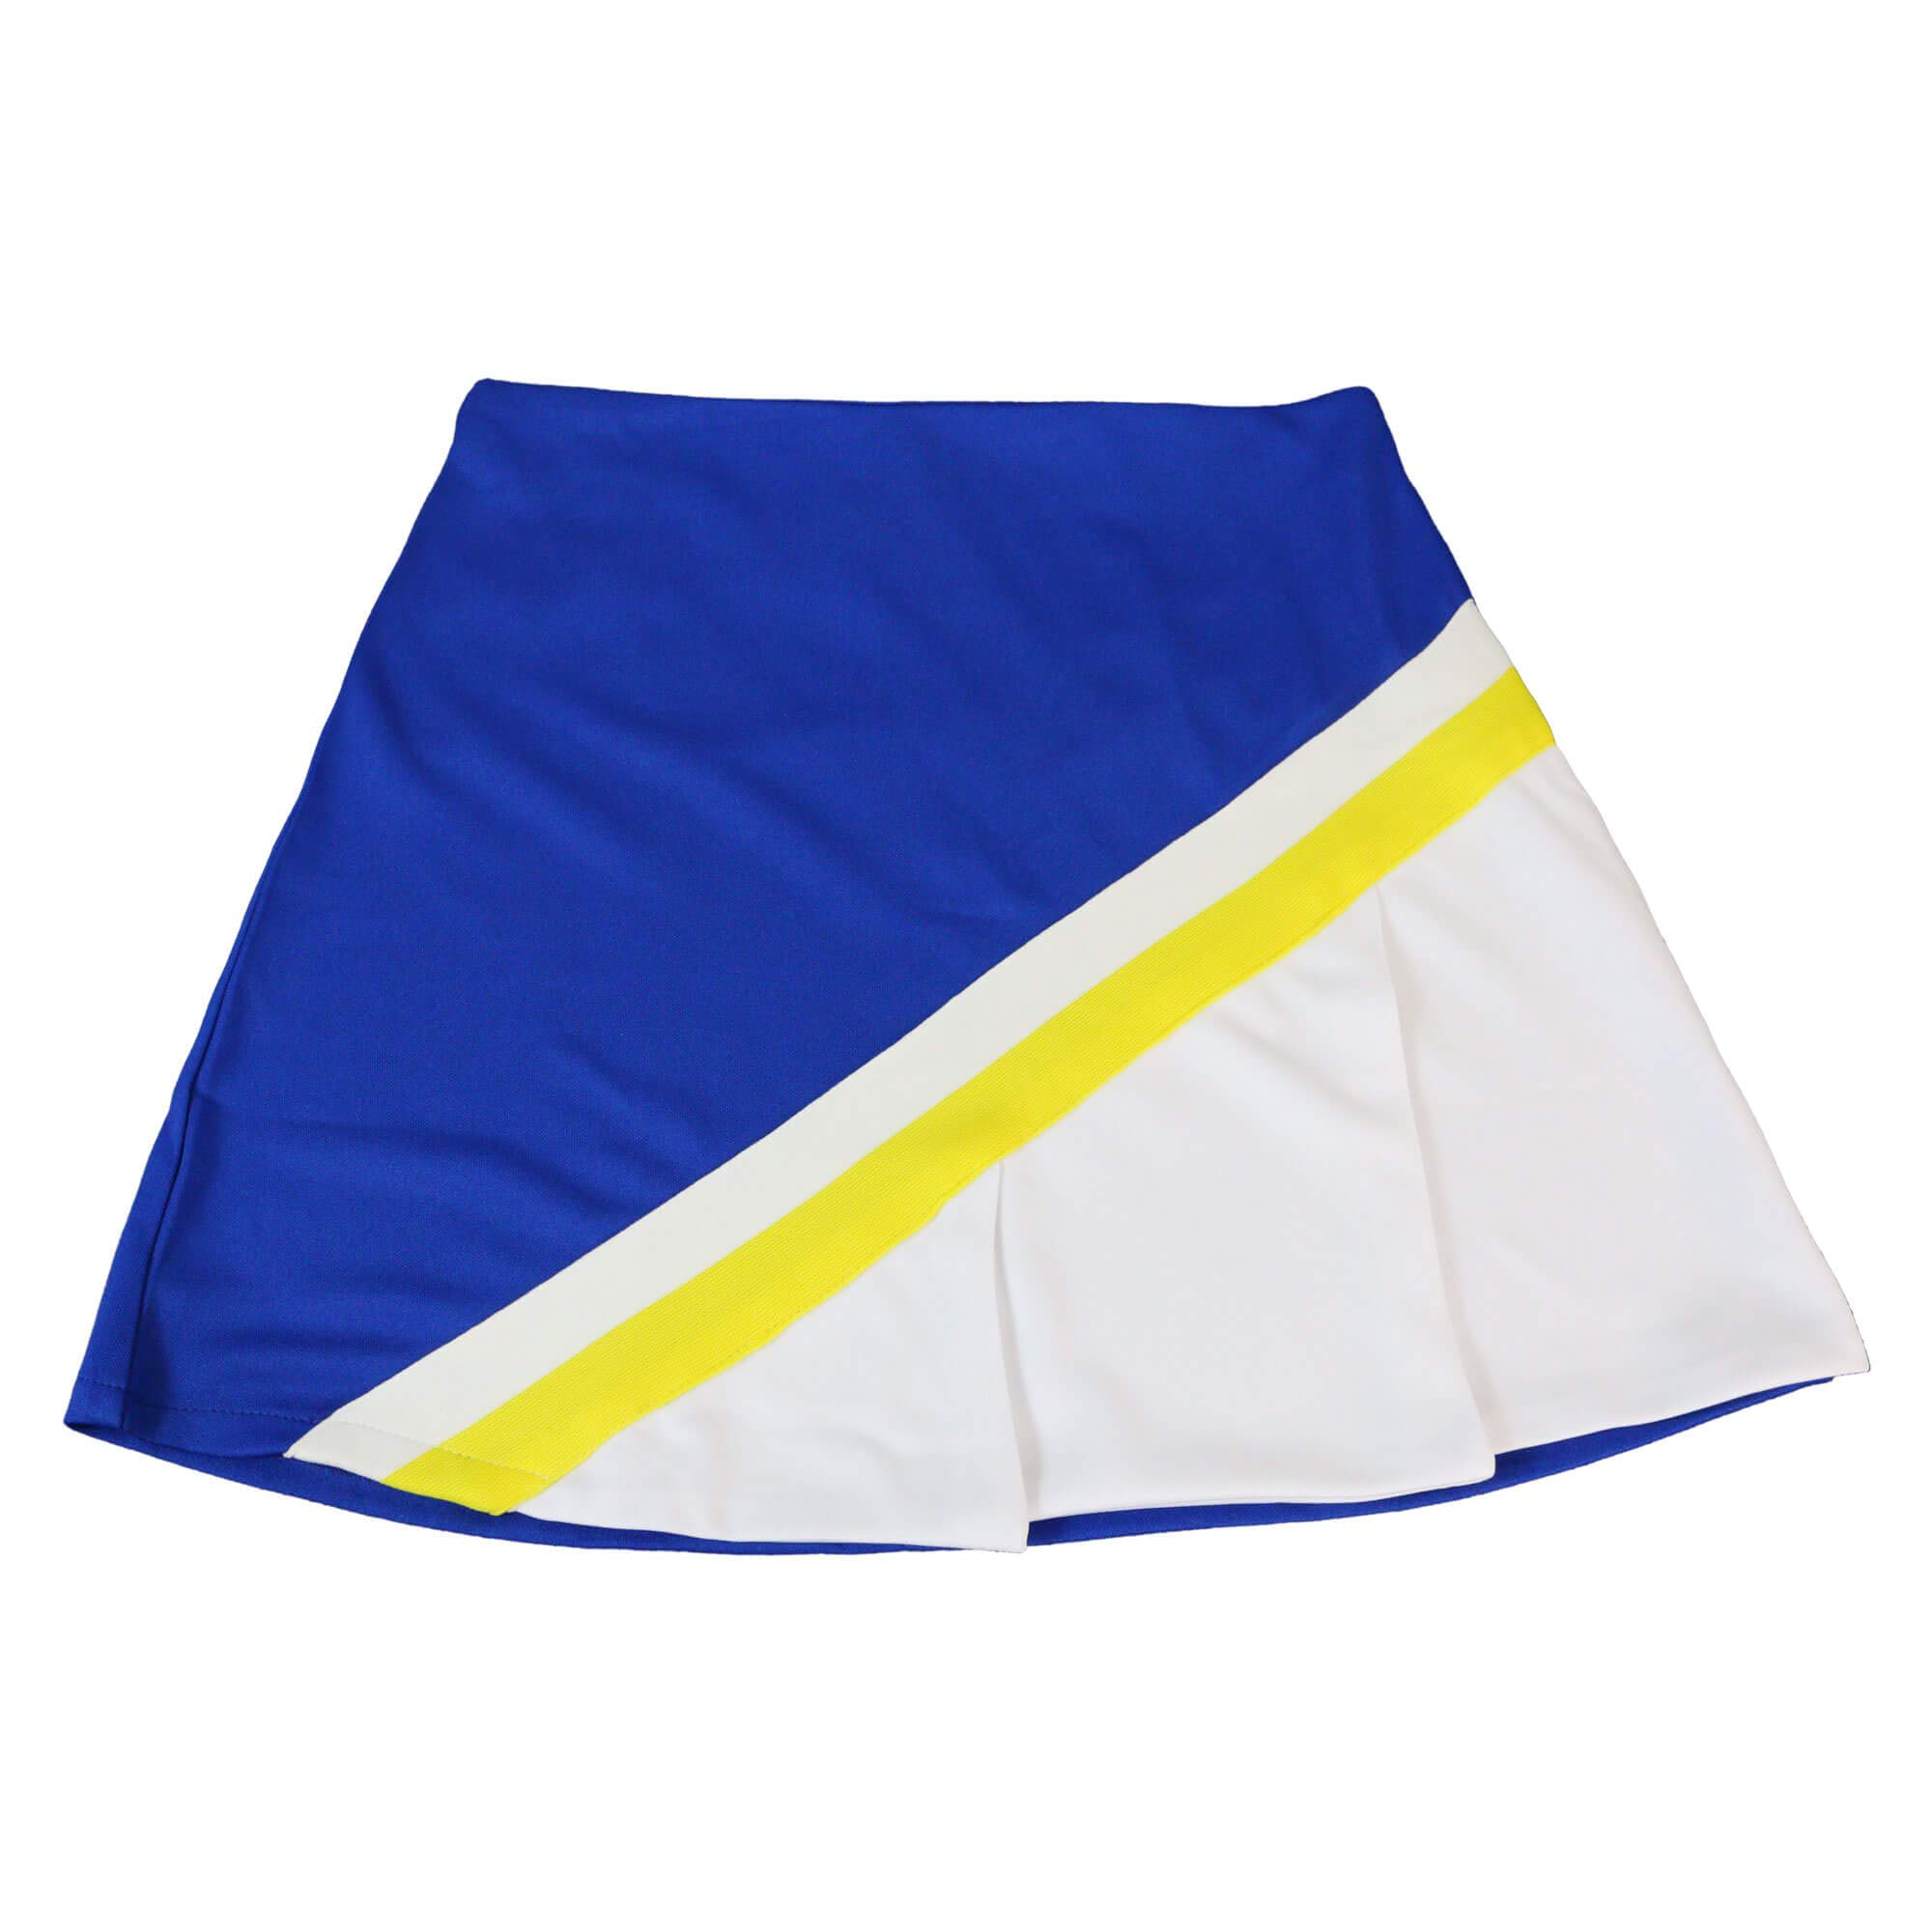 Danzcue Child Cheerleading A-Line Pleat Skirt, Royal-White, Medium by Danzcue